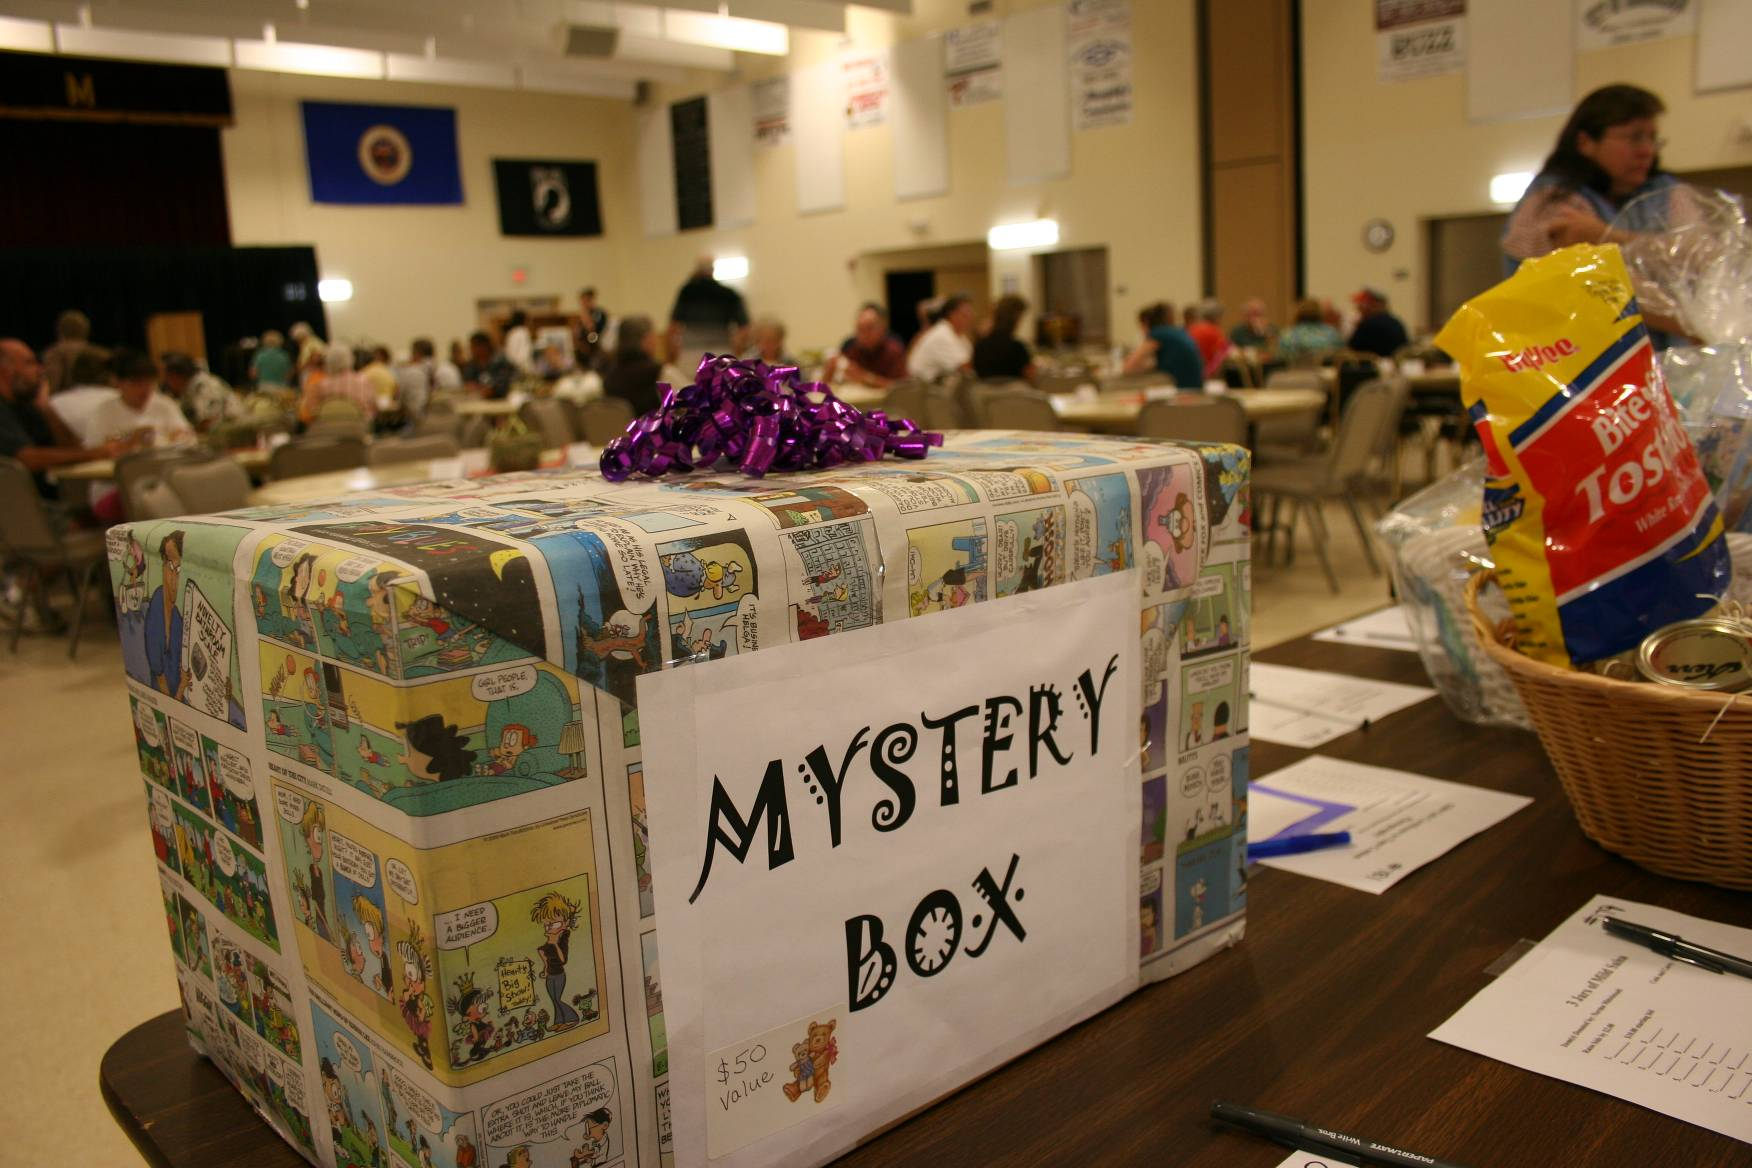 A mystery box at the CVLHS silent auction attracted plenty of attention, including mine. I guessed a microwave. Anyone care to reveal the mystery?